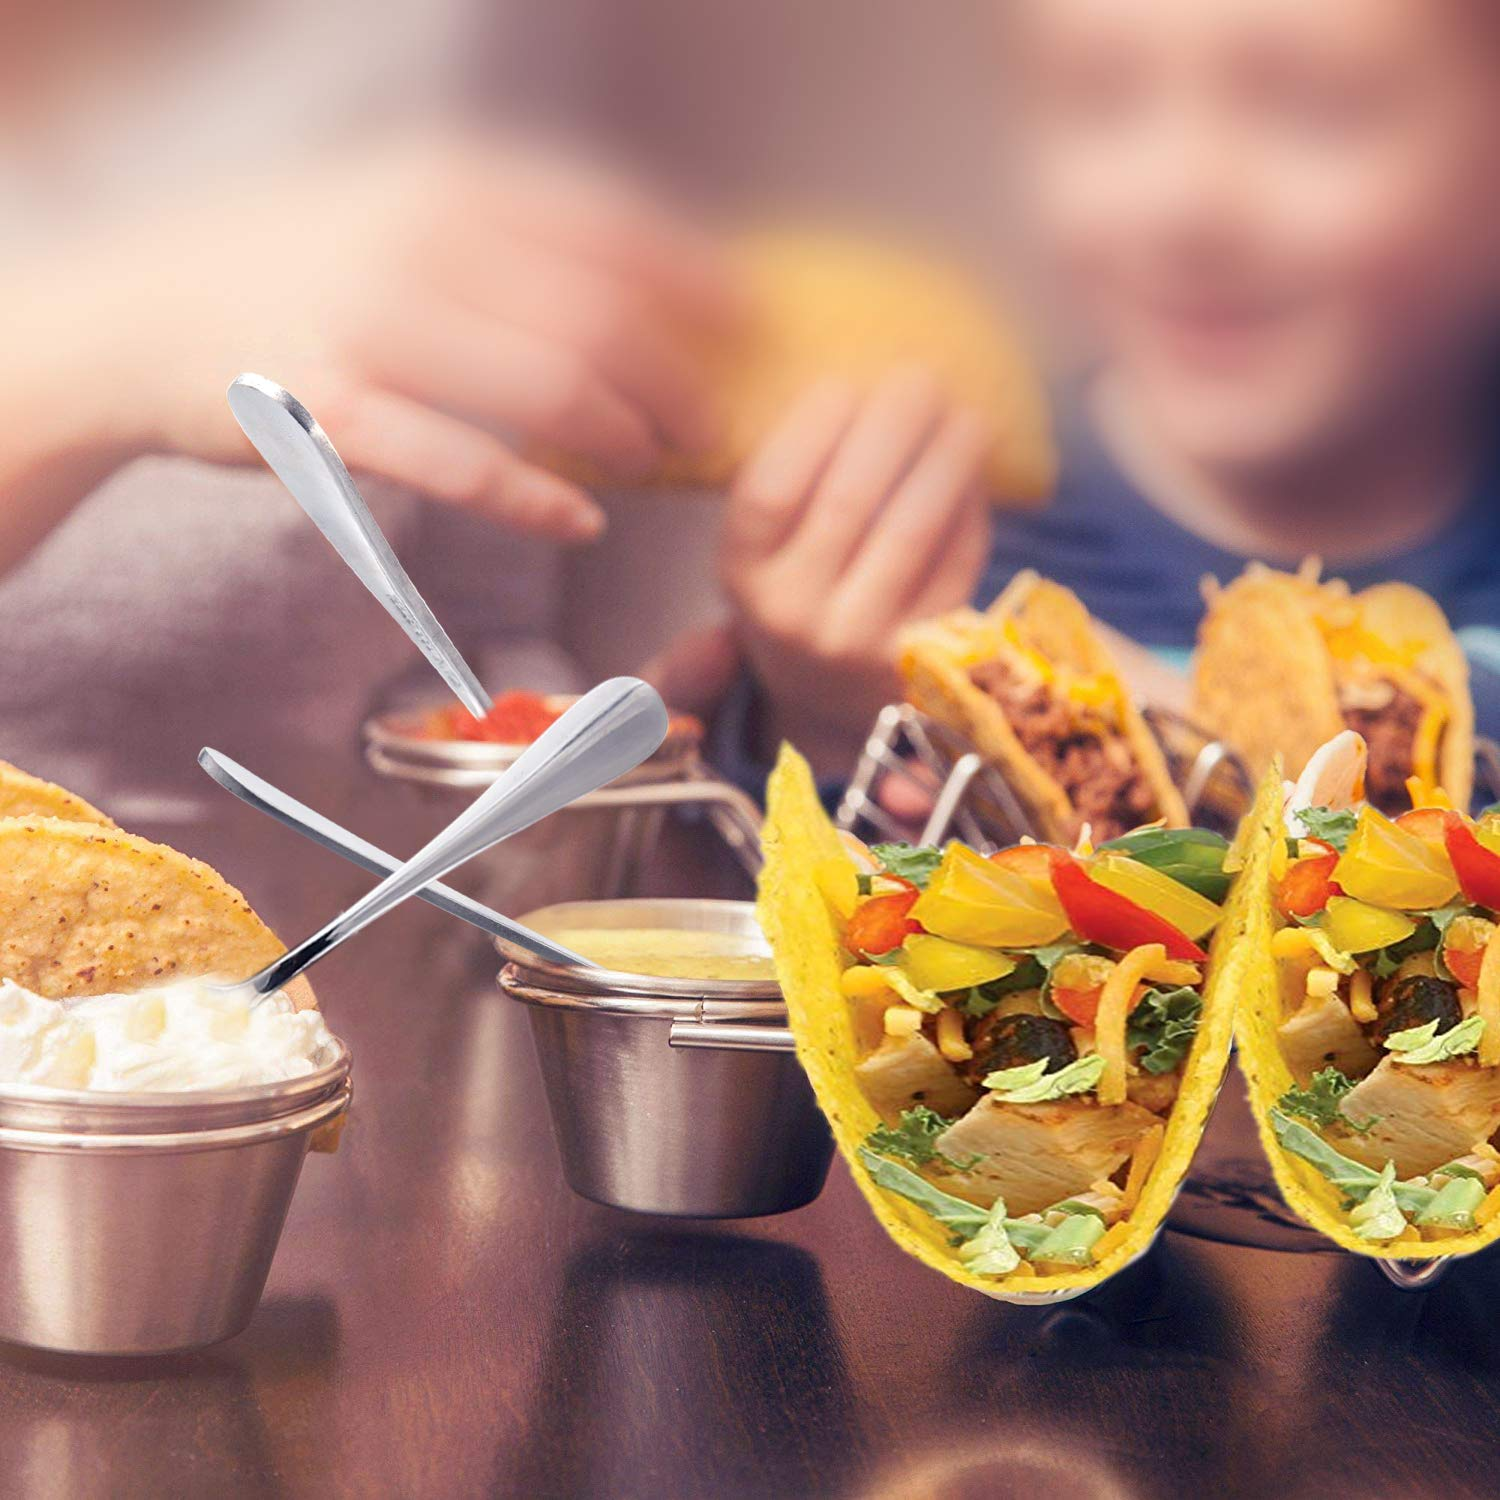 Upgrade Taco Shell Stand Up Holders-4 Pack Premium Stainless Steel Taco Holder with 8 Salad Cups & 4 Spoons,Holds 3 Tacos Each Keeping Shells Upright & Neat by U-picks (Image #6)